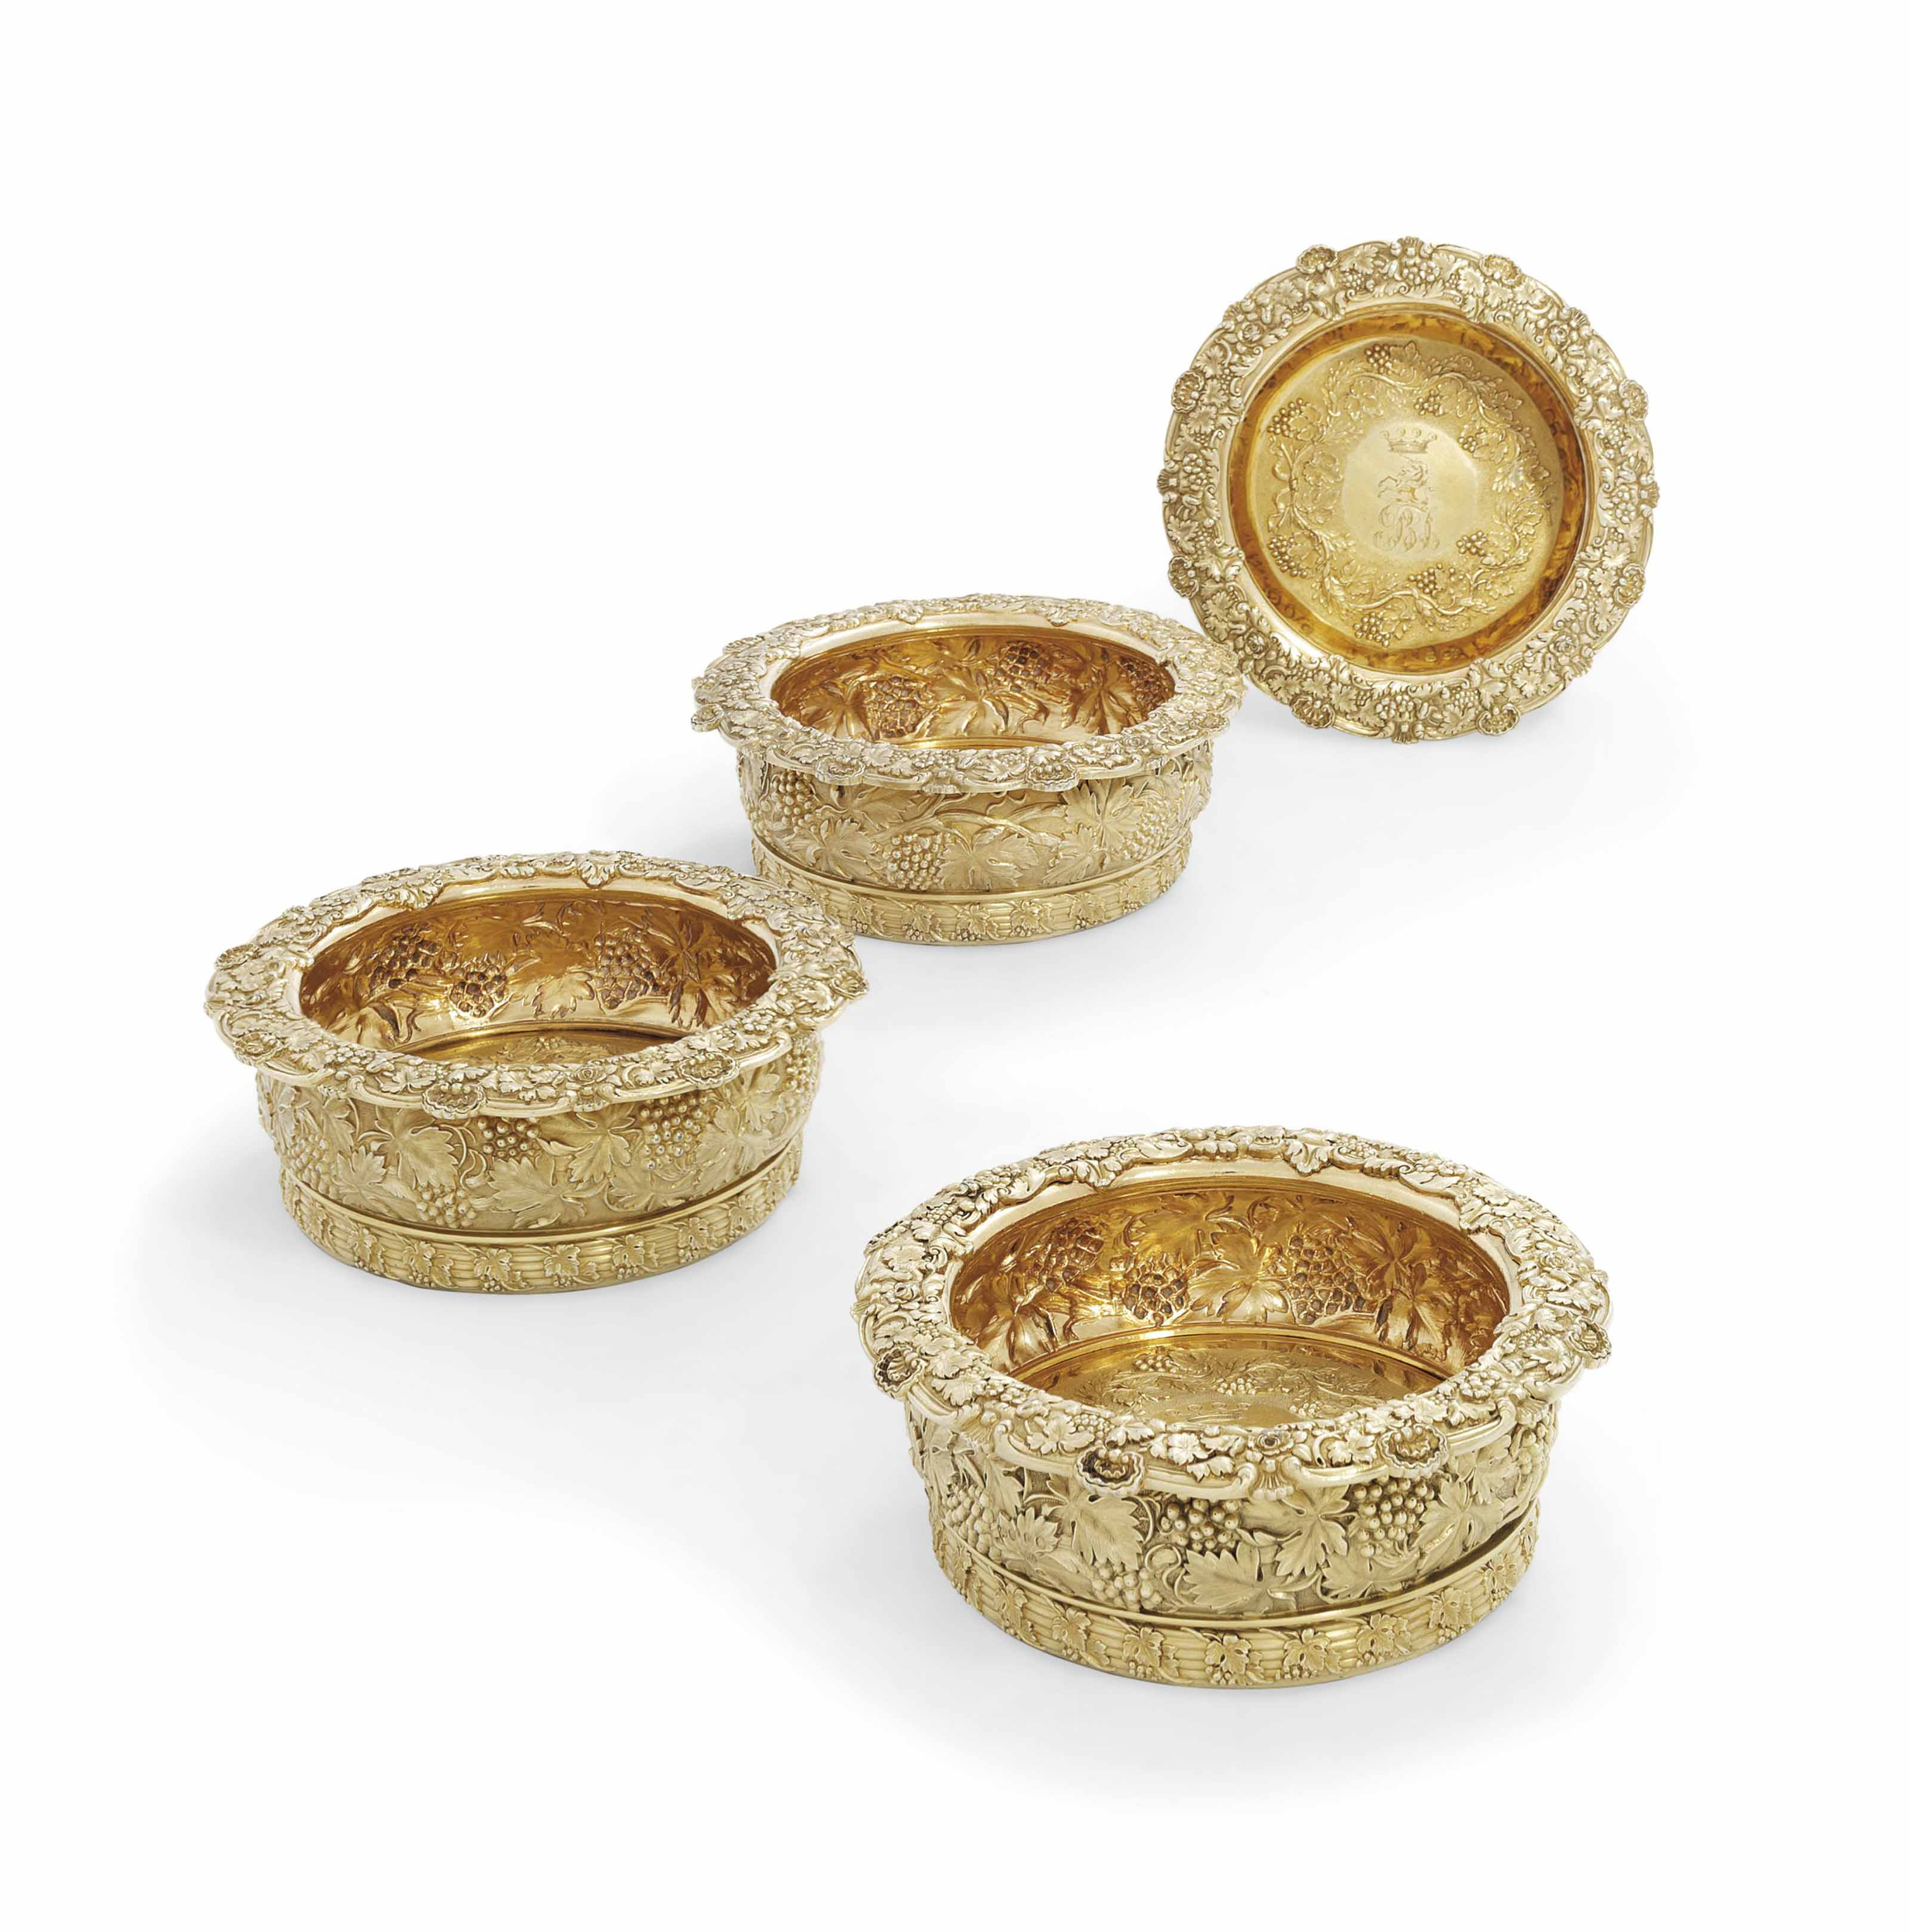 A SET OF FOUR GEORGE IV SILVER-GILT WINE-COASTERS FROM THE SAMPAIO SERVICE